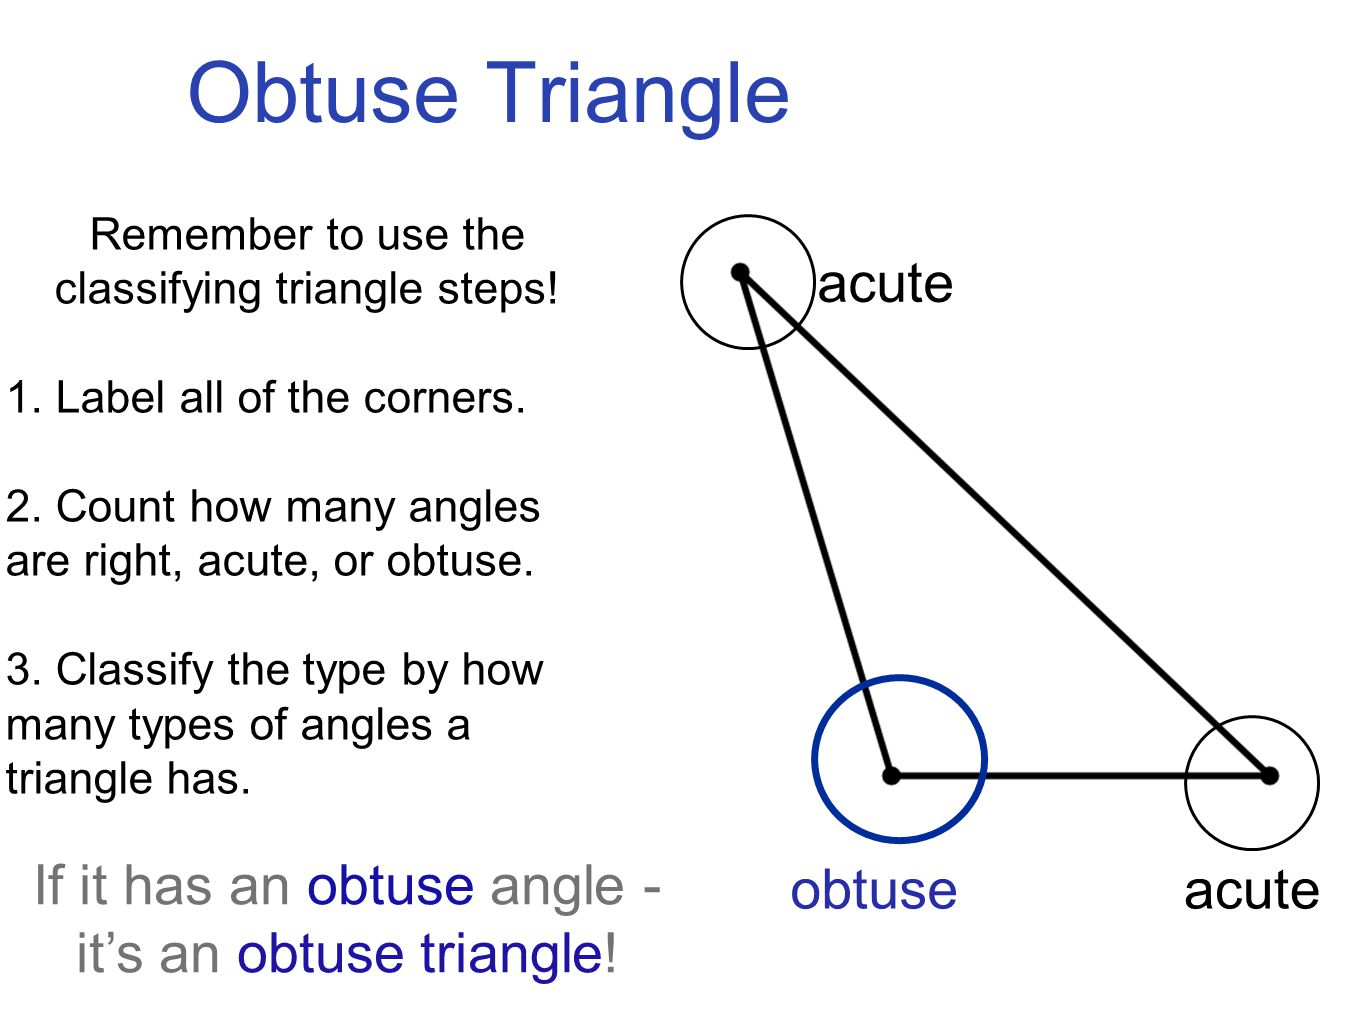 worksheet Classifying Angles triangles i can describe and classify by their angles obtuse triangle remember to use the classifying steps 1 label all of the